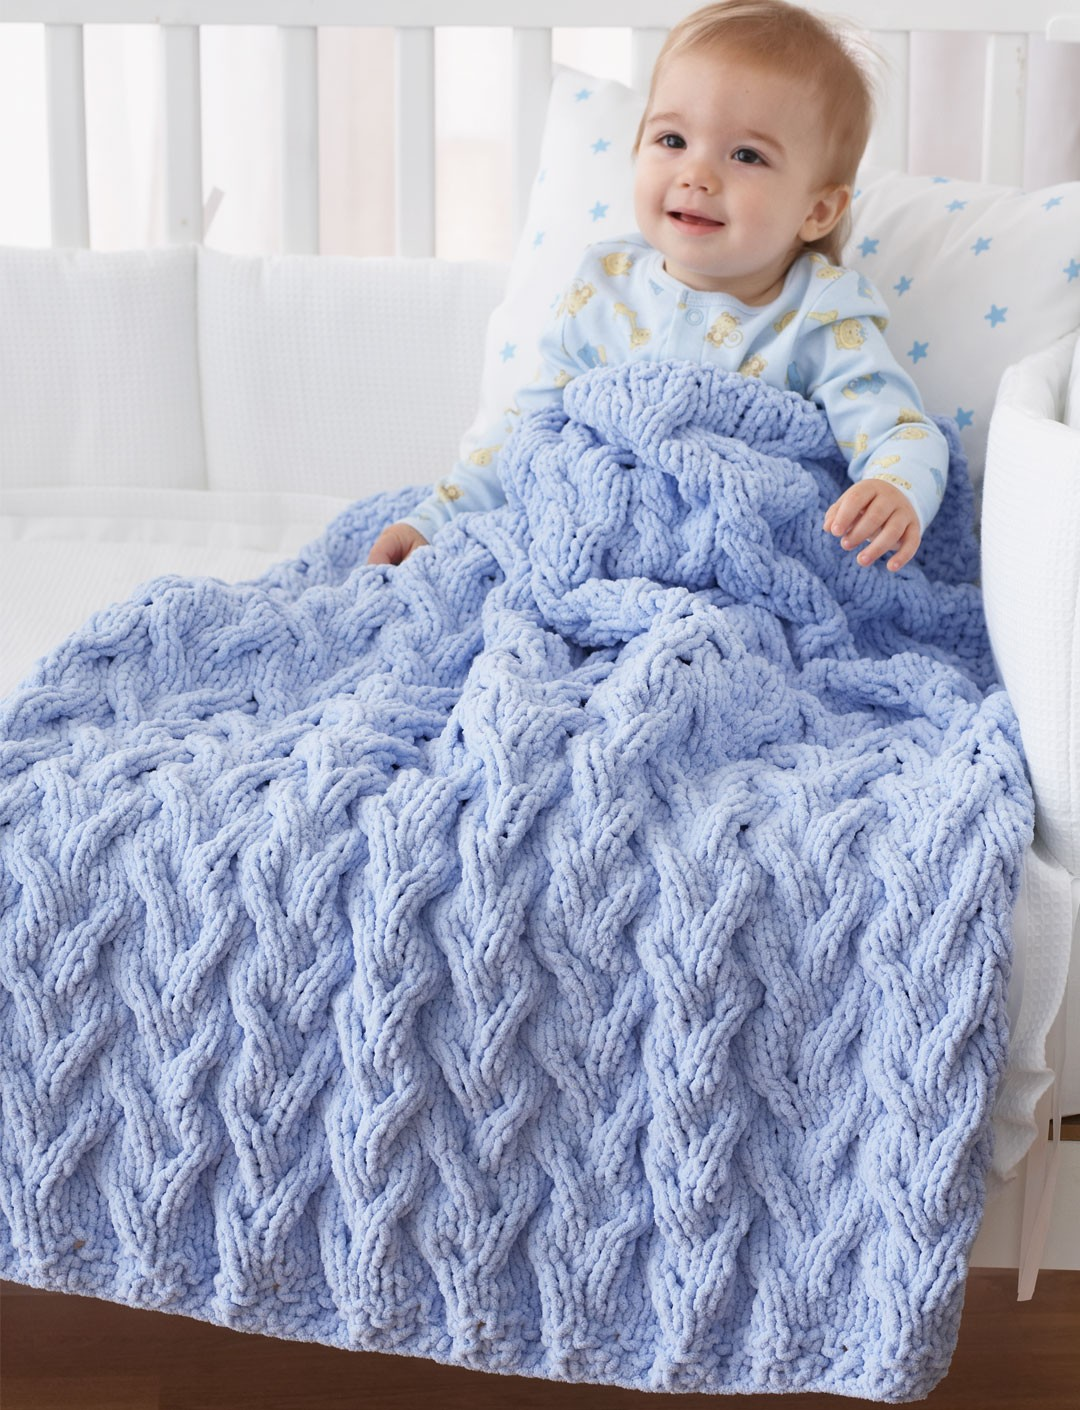 Crochet Patterns For Bernat Blanket Yarn : bernat baby blanket patterns free Car Tuning